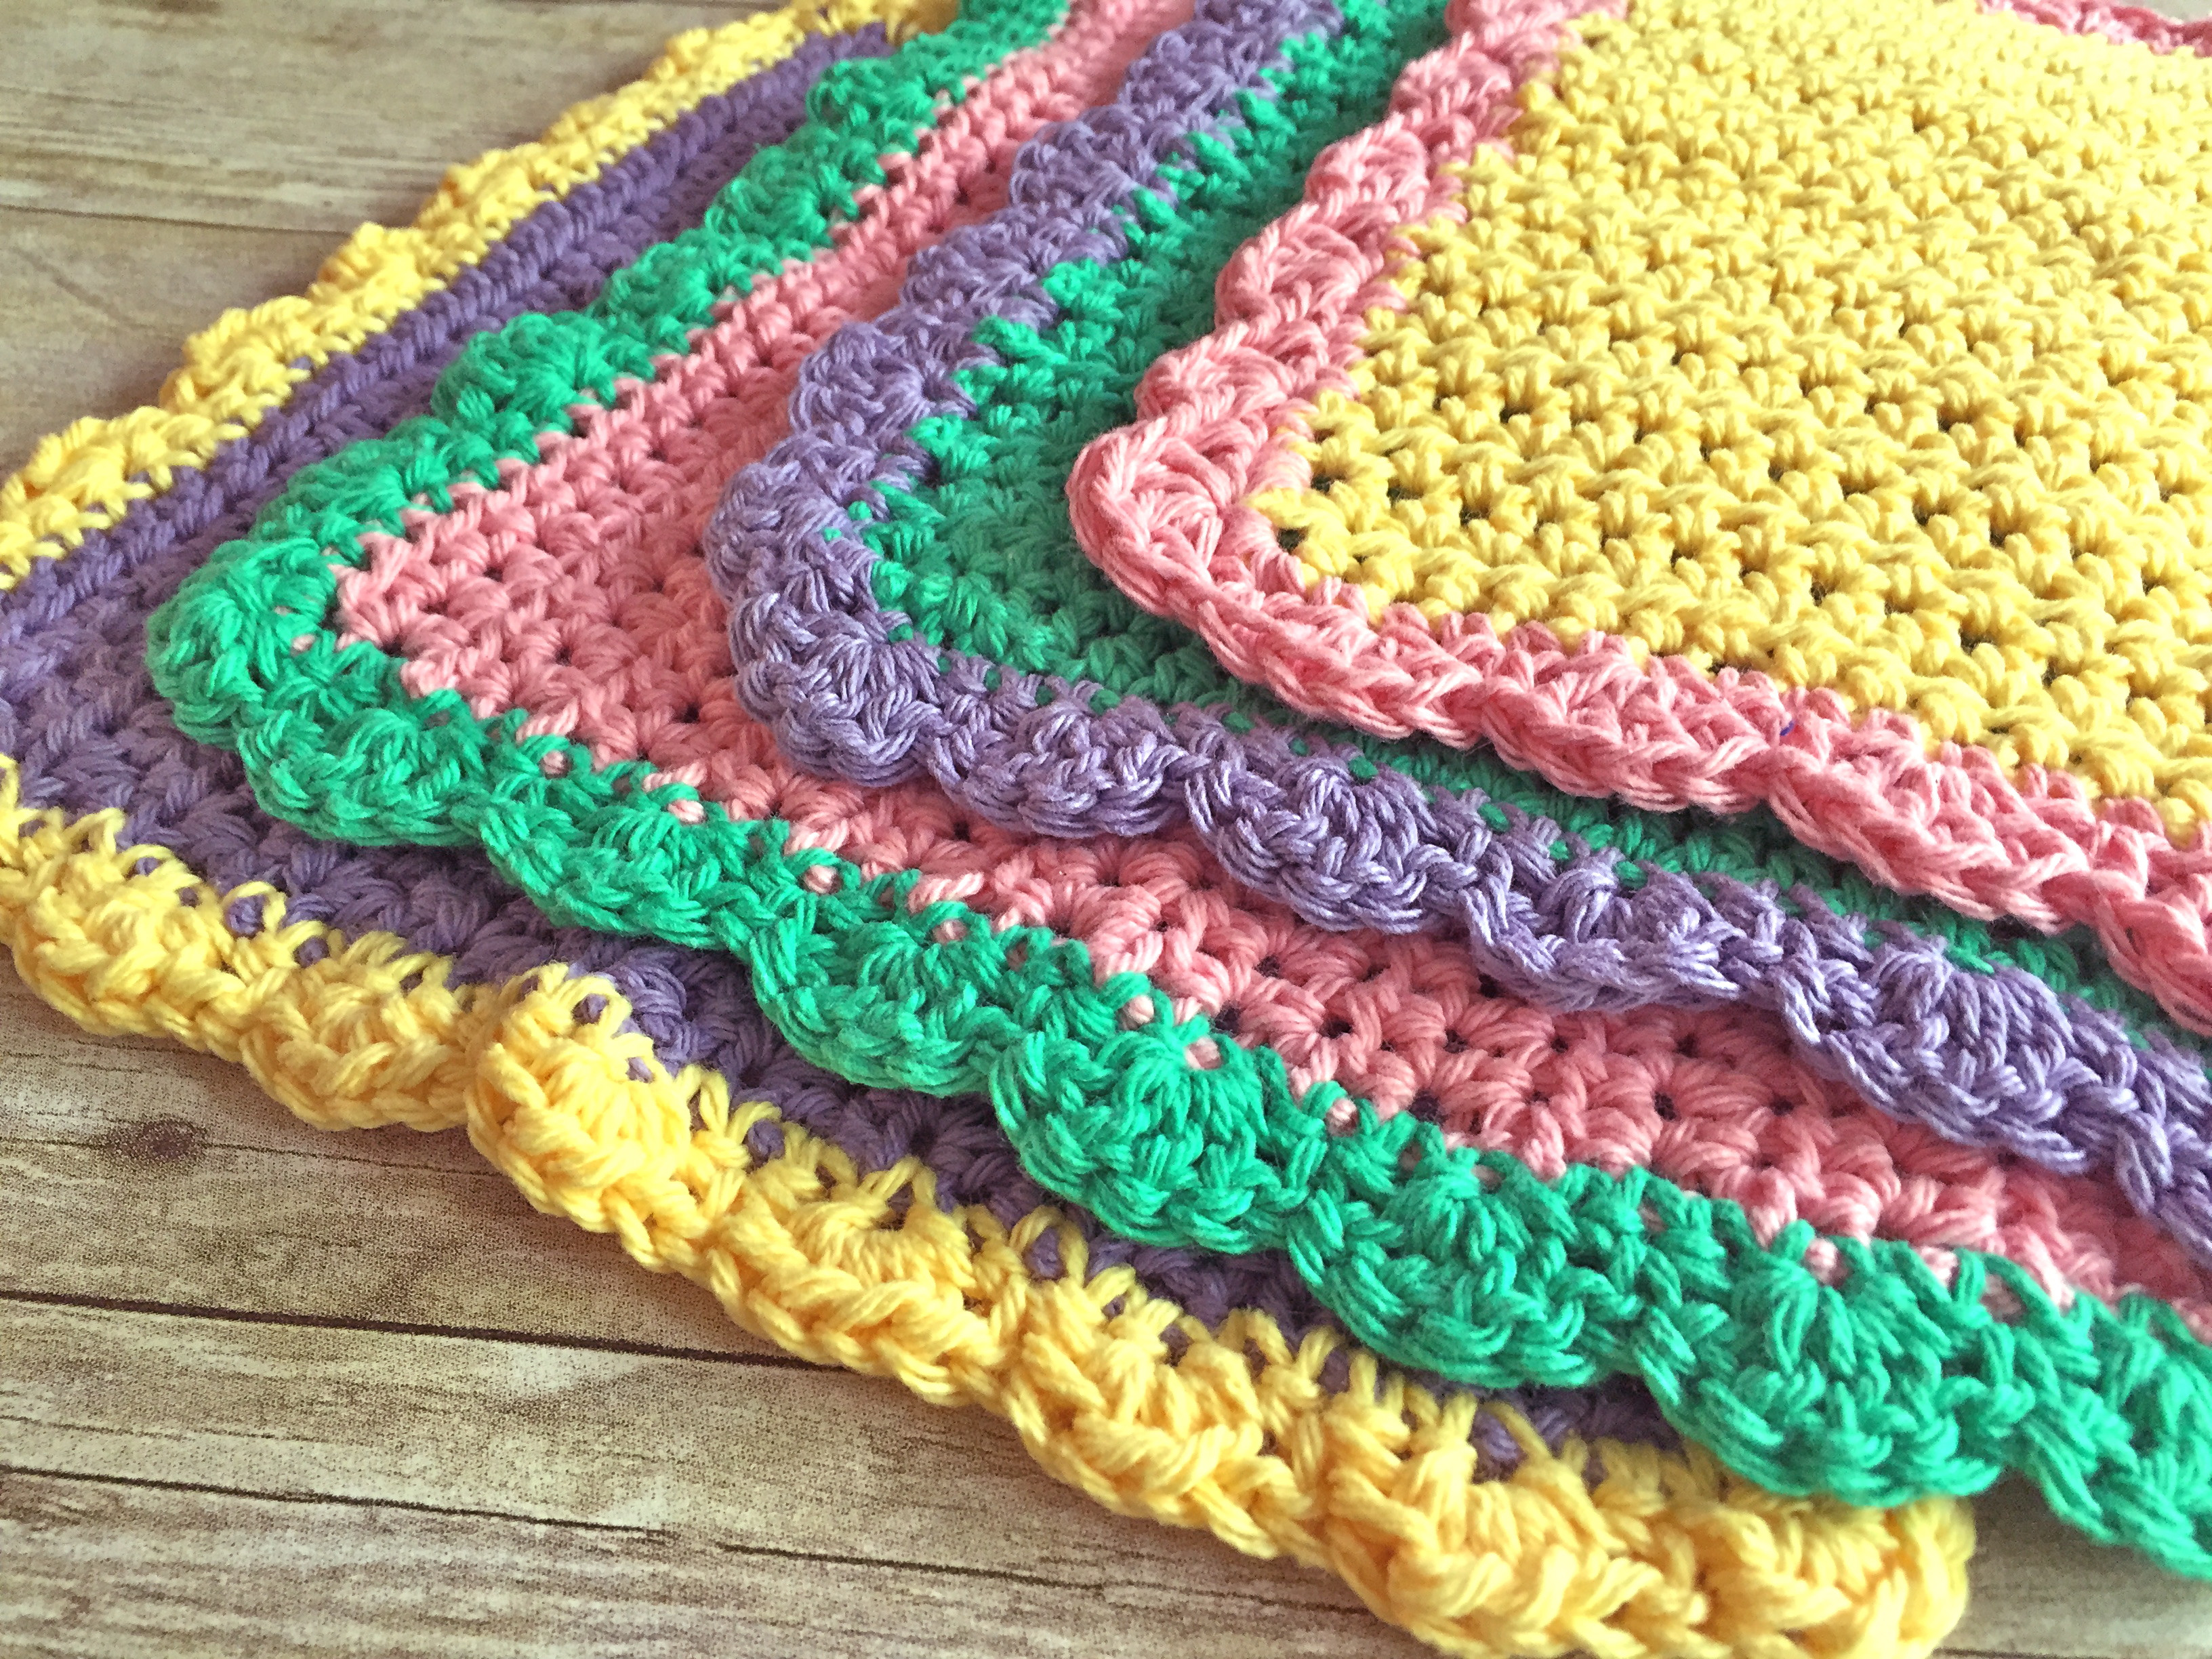 Crochet Patterns New Crochet Dishcloth Pattern Free Easy Dancox for Of Charming 50 Models Crochet Patterns